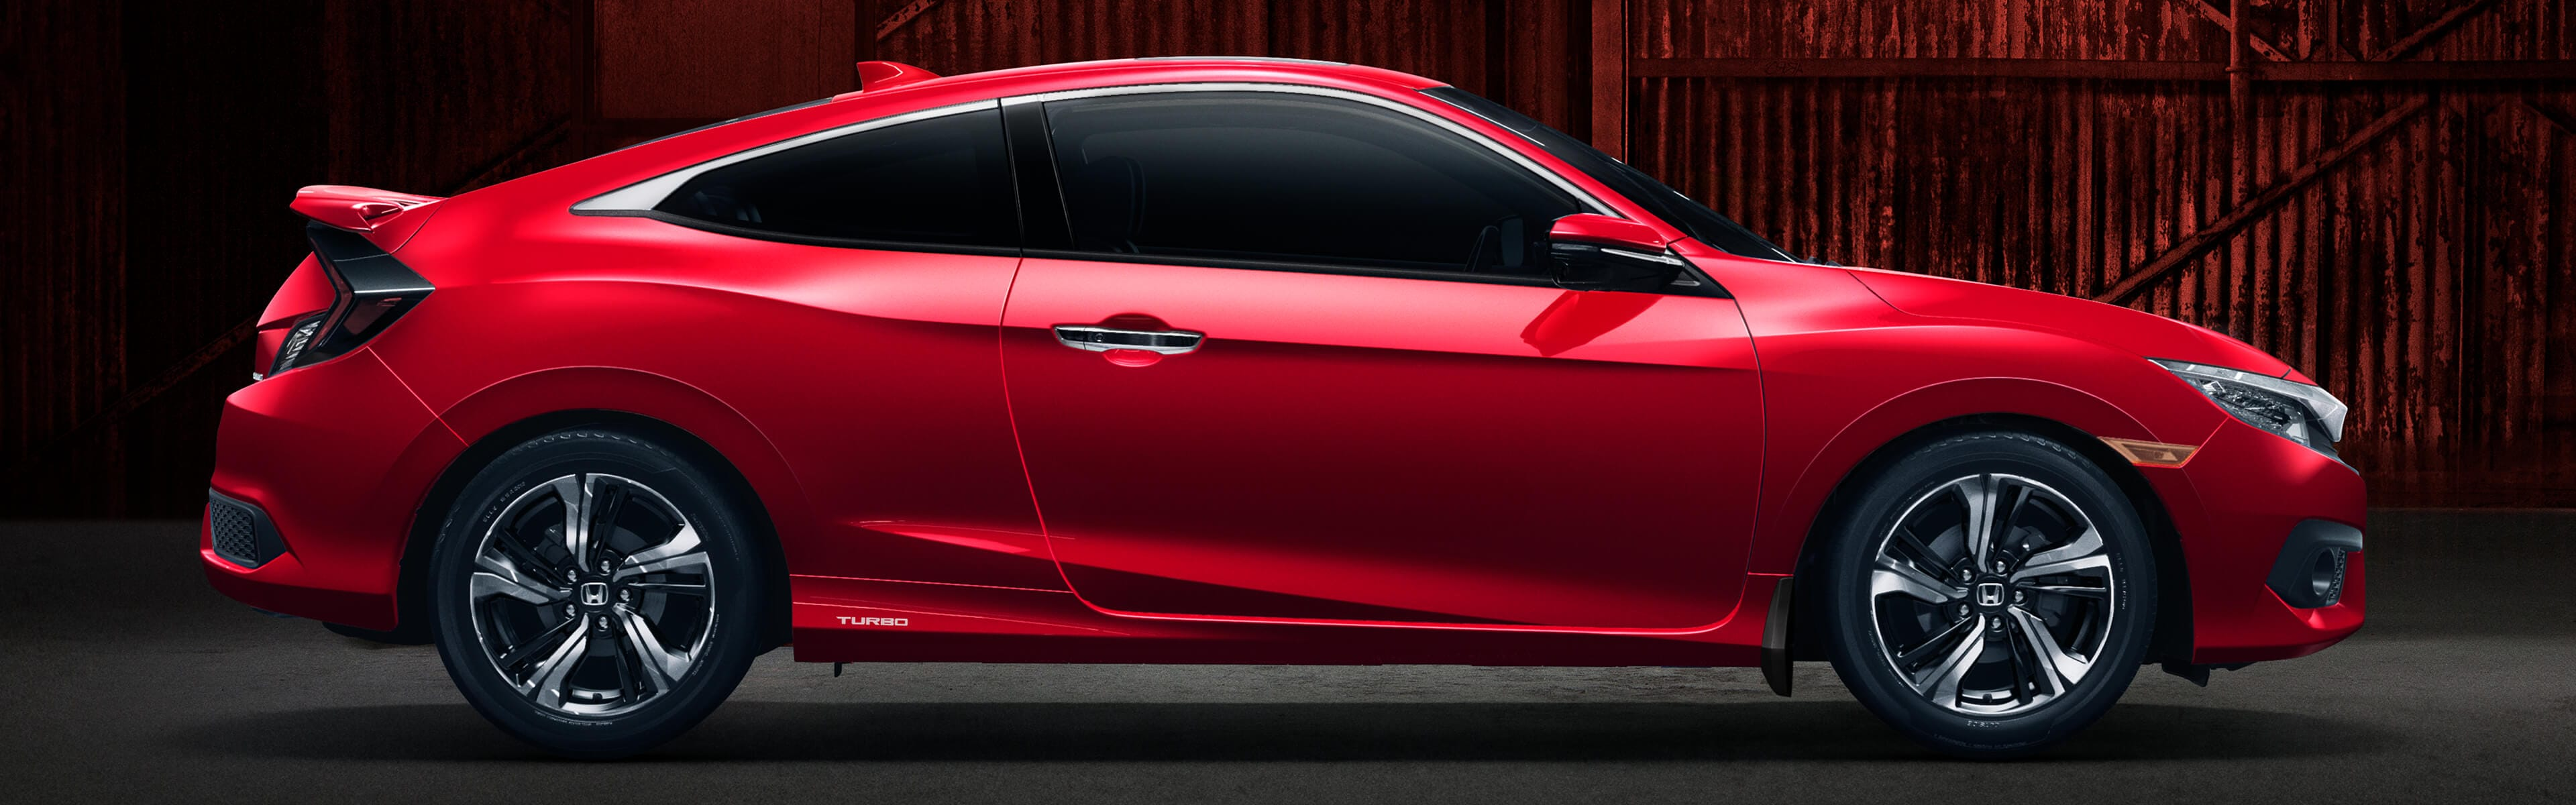 The 2018 civic coupe honda canada for Honda civic coupe price